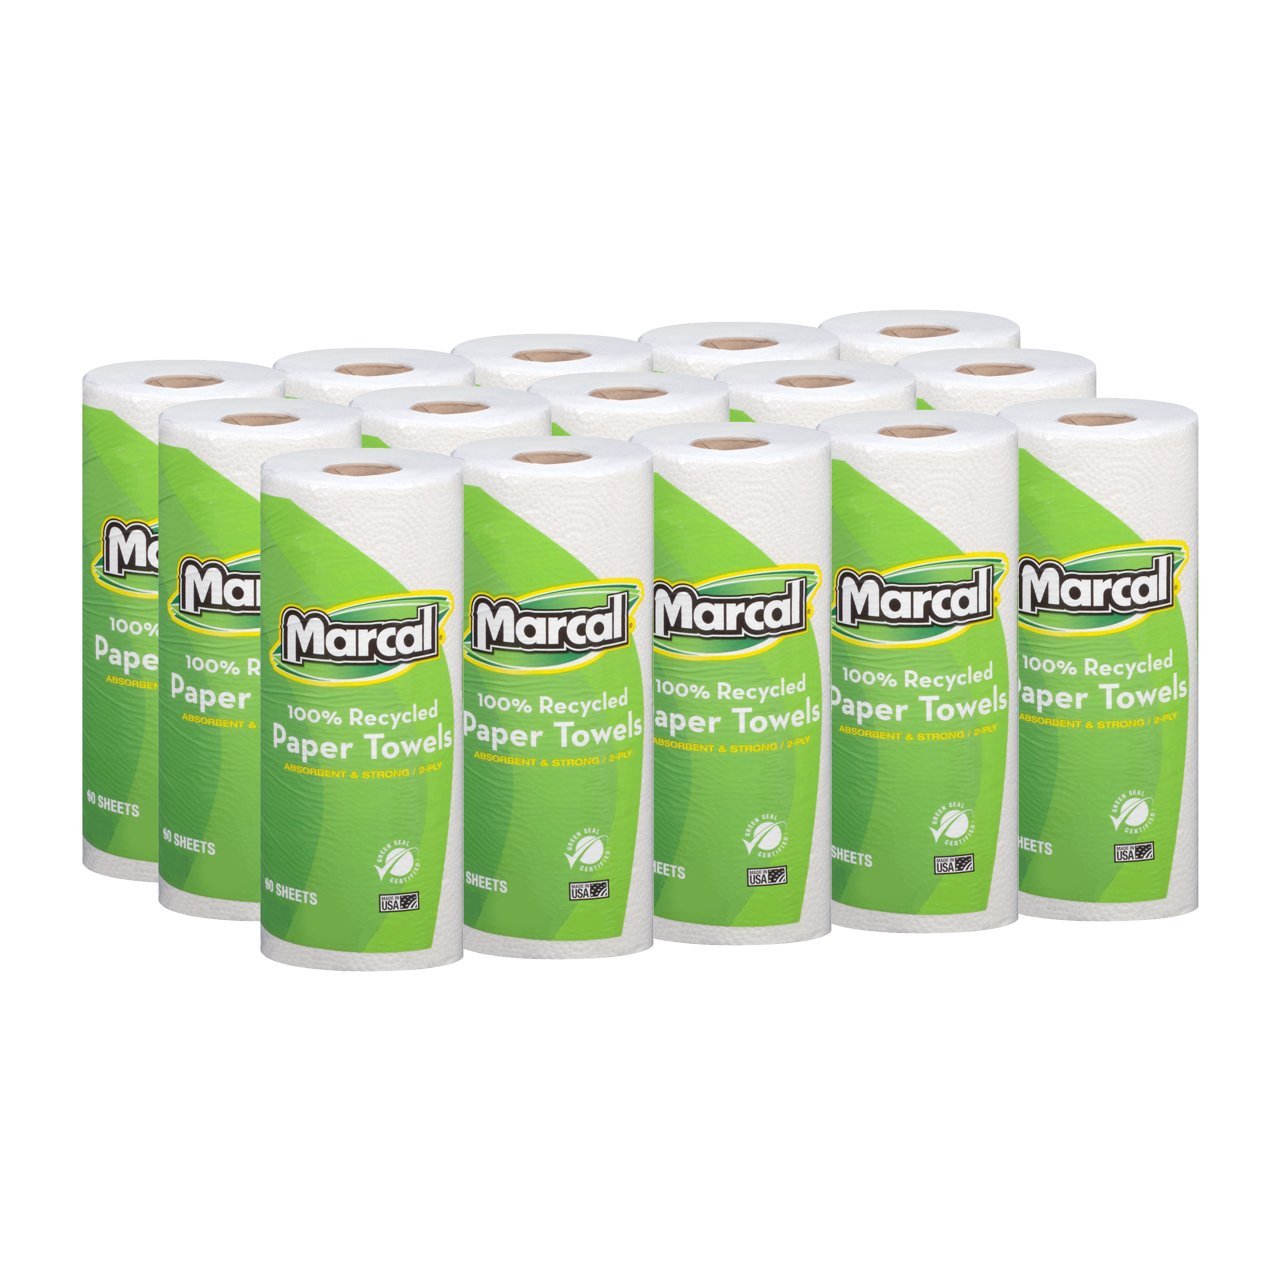 Marcal Paper Towels 100% Recycled 2-Ply, 60 Sheets Per Roll - Case of 15 Individually Wrapped Green Seal Certified 06709 by Marcal